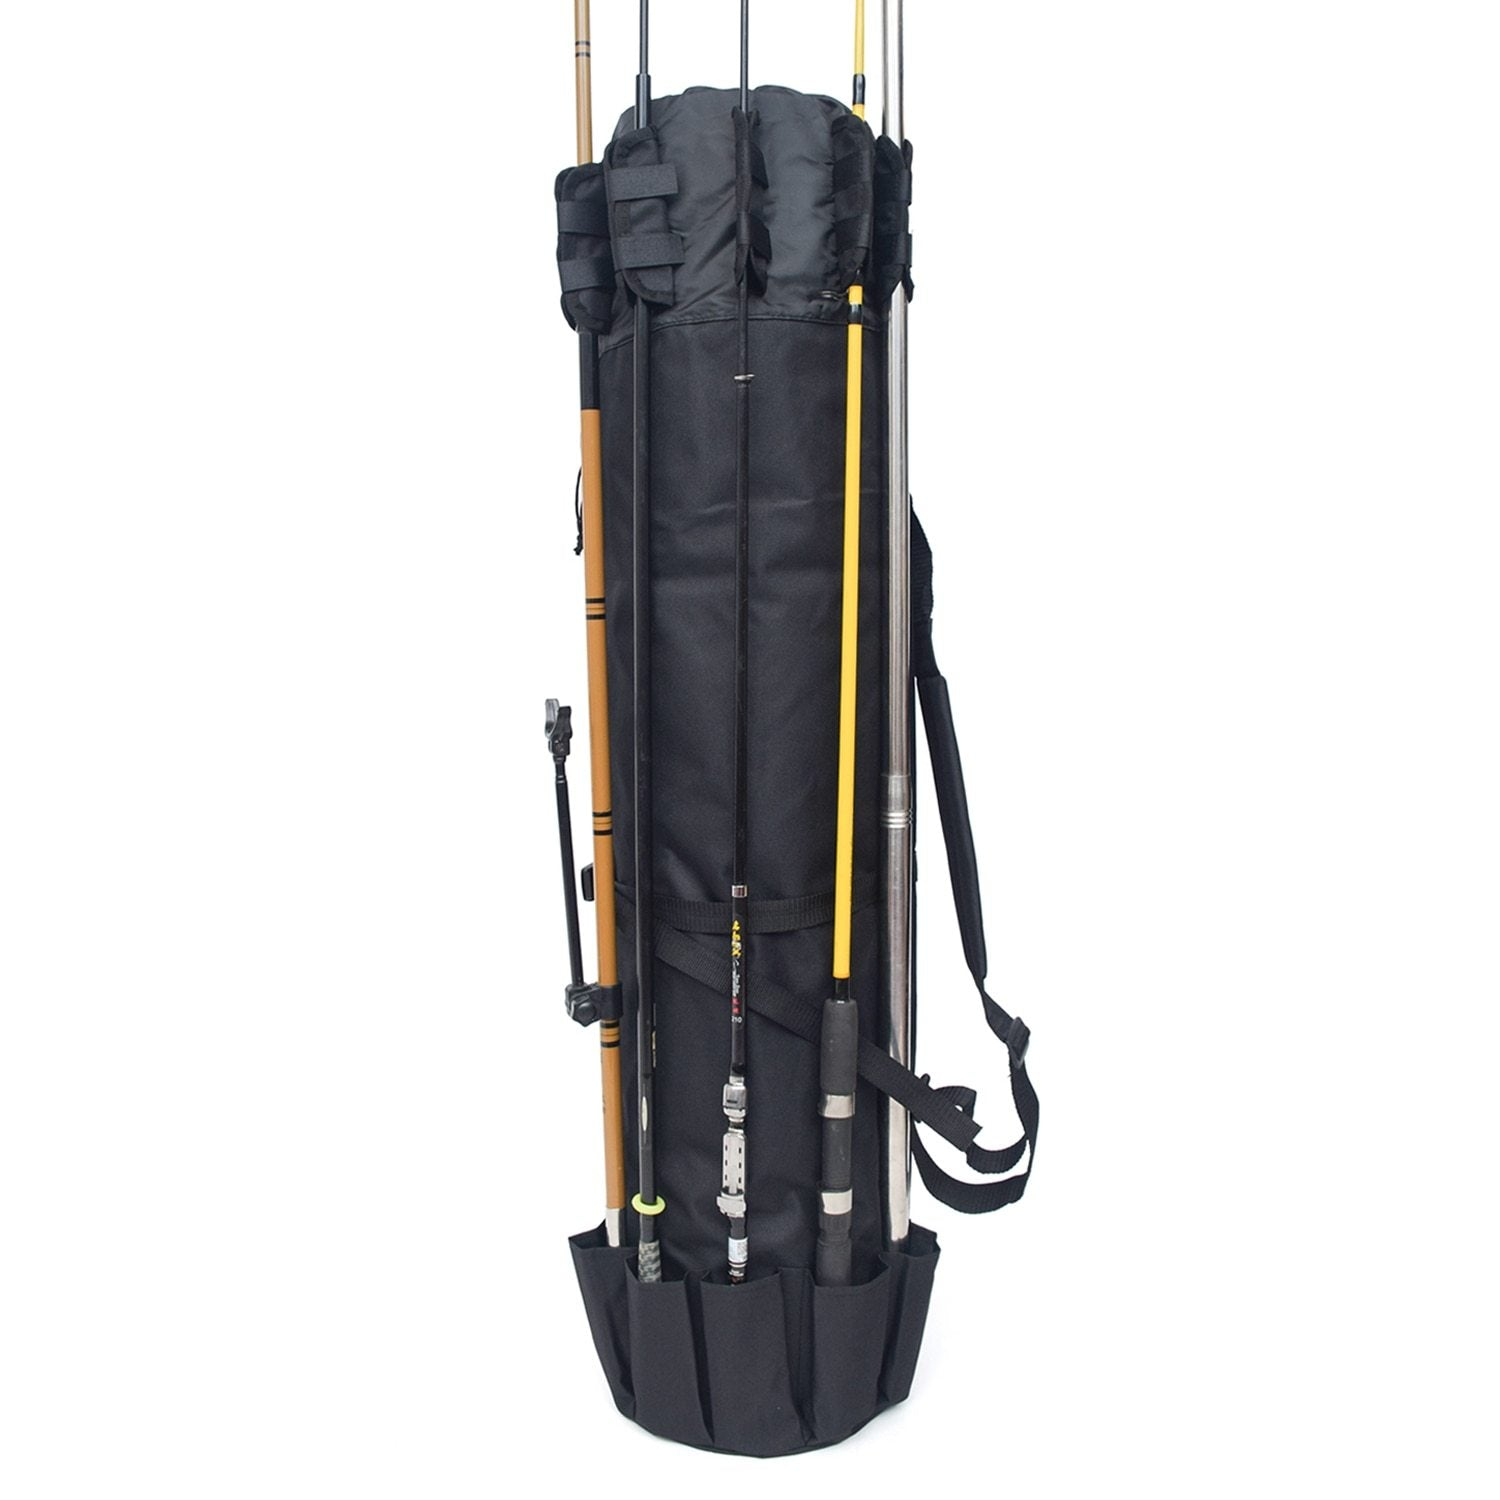 2020 Waterproof Fishing Rod & Tackle Storage Bag